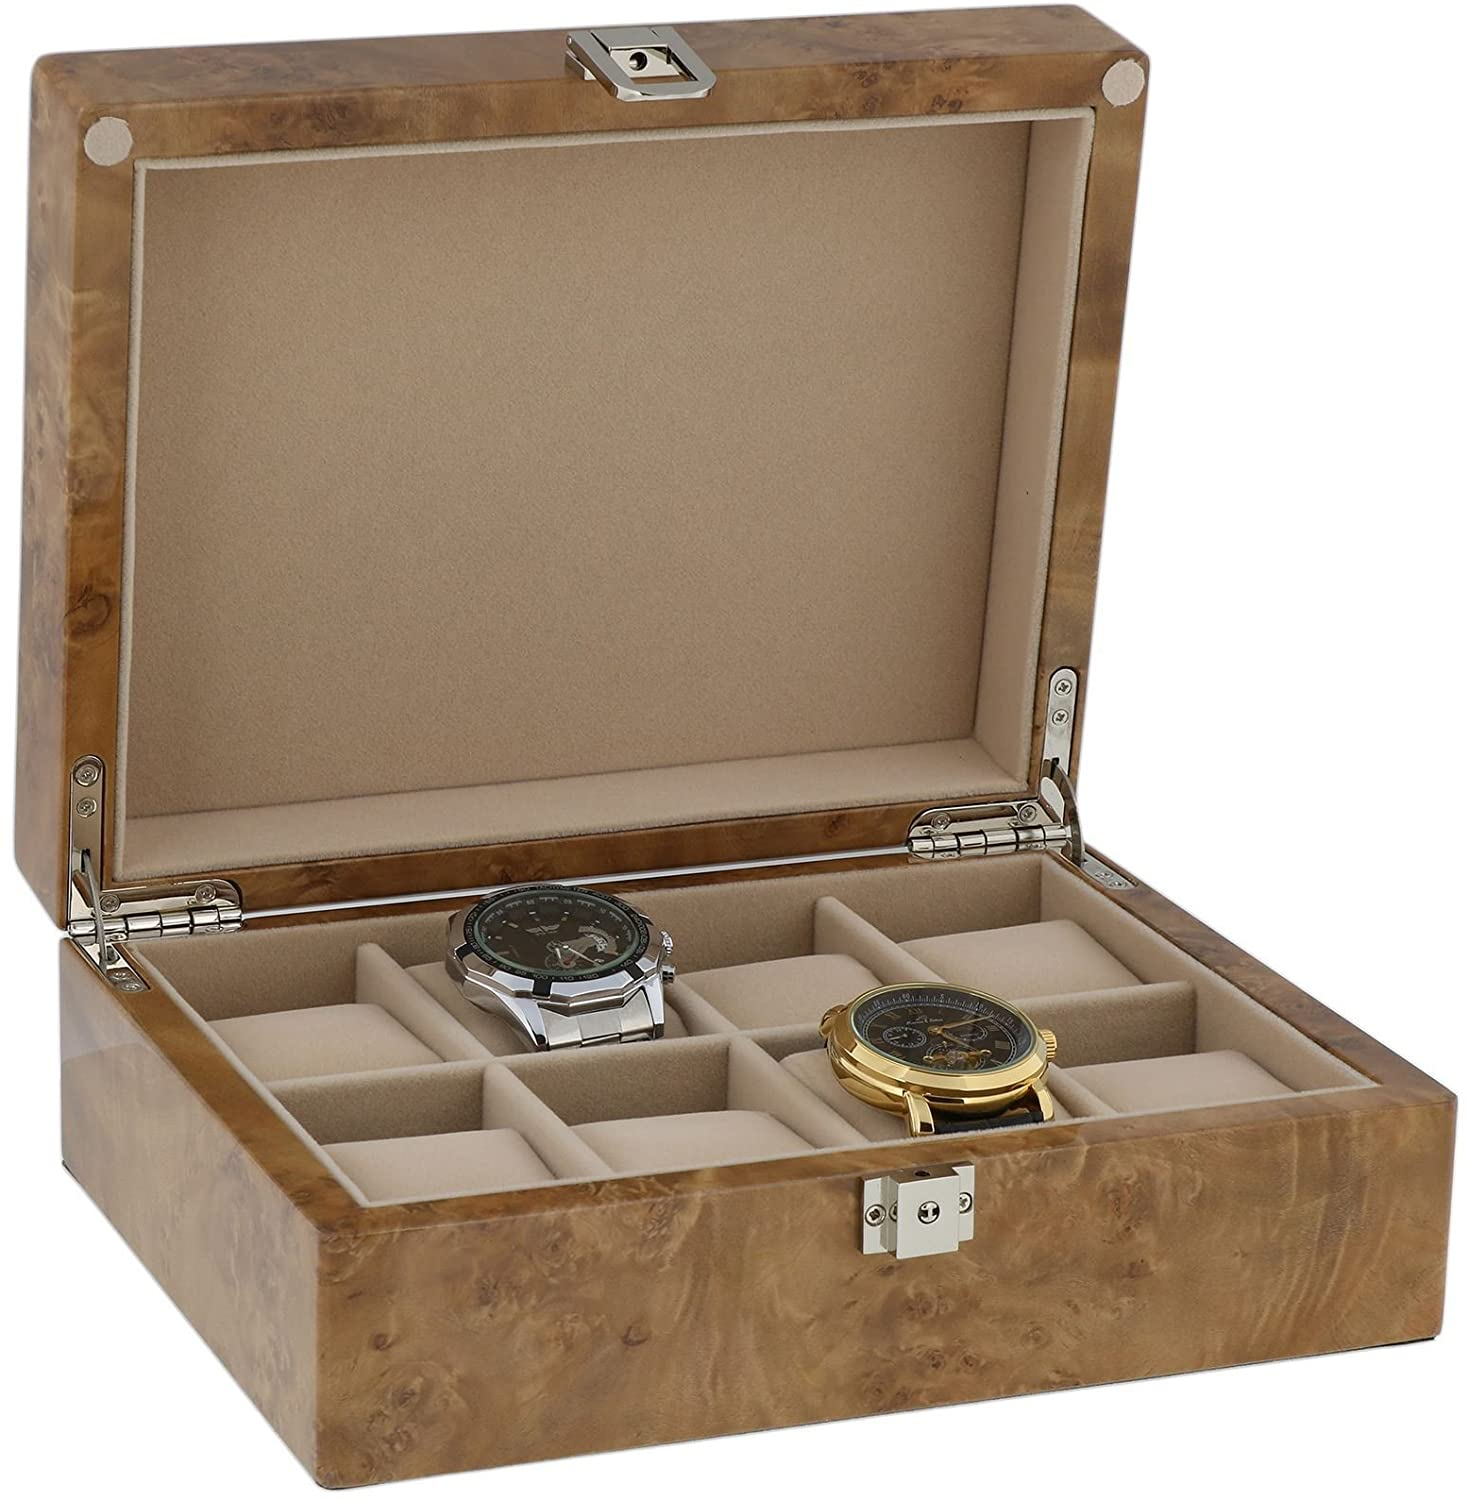 Watch Collectors Box for 8 Wrist Watches in Light Burl Wood with Solid Lid by Aevitas